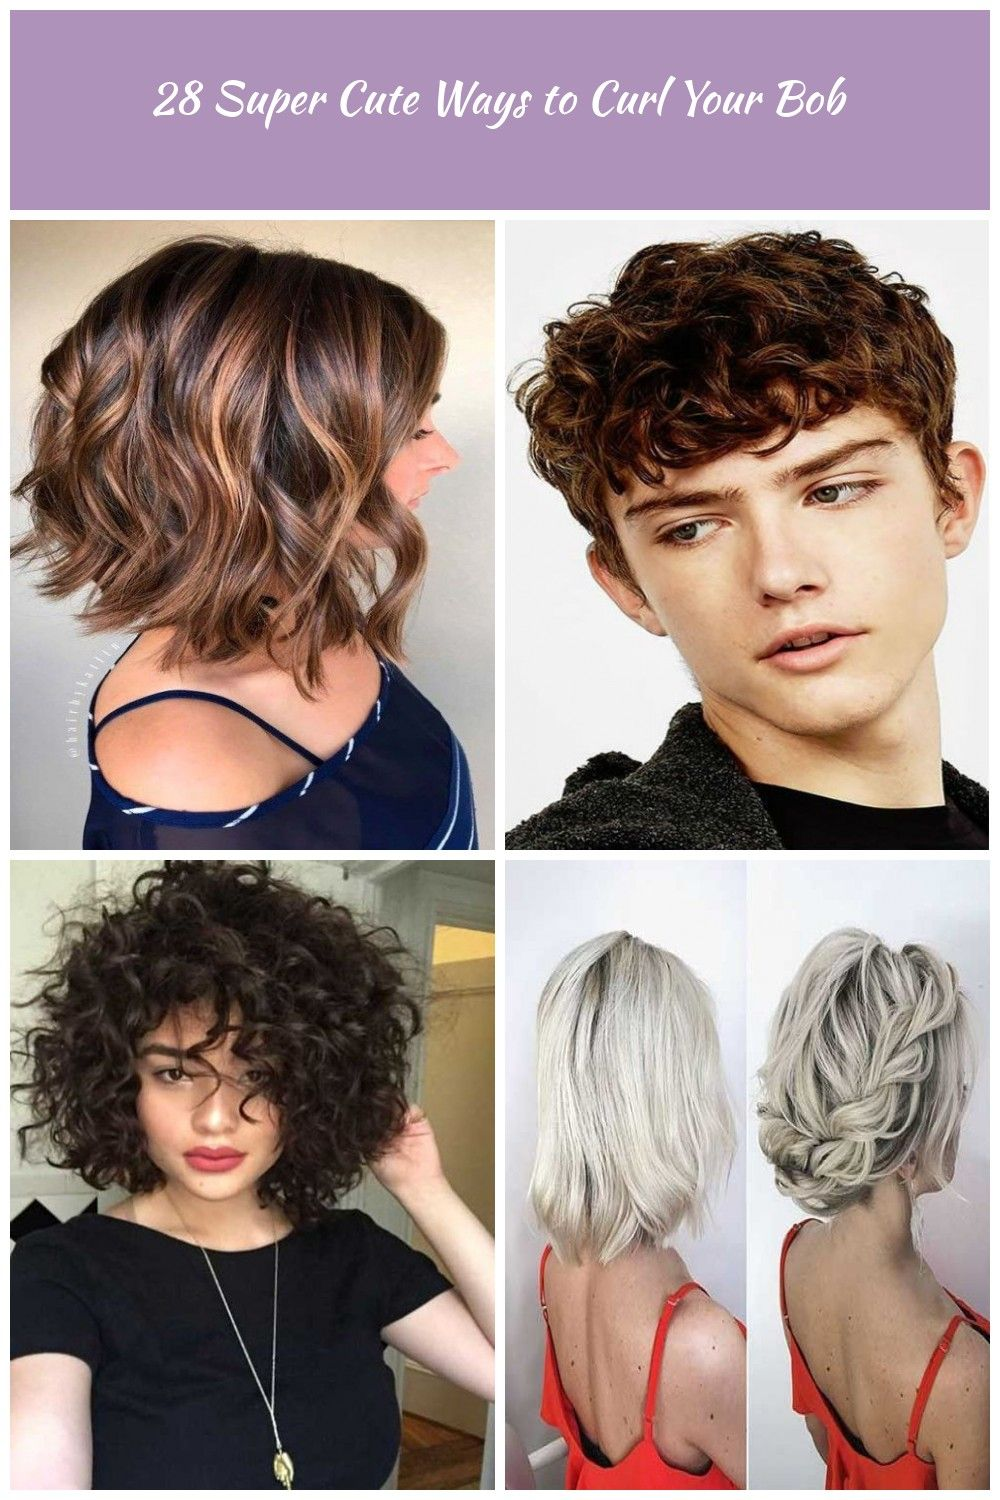 12 Super Cute Ways to Curl Your Bob hair style curly 12 Super Cute